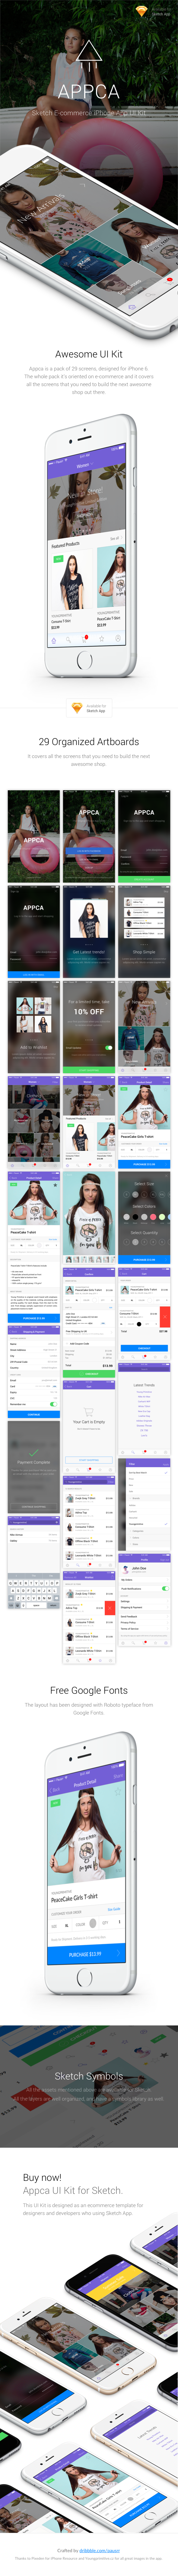 Appca – Ecommerce UI Kit for Sketch App